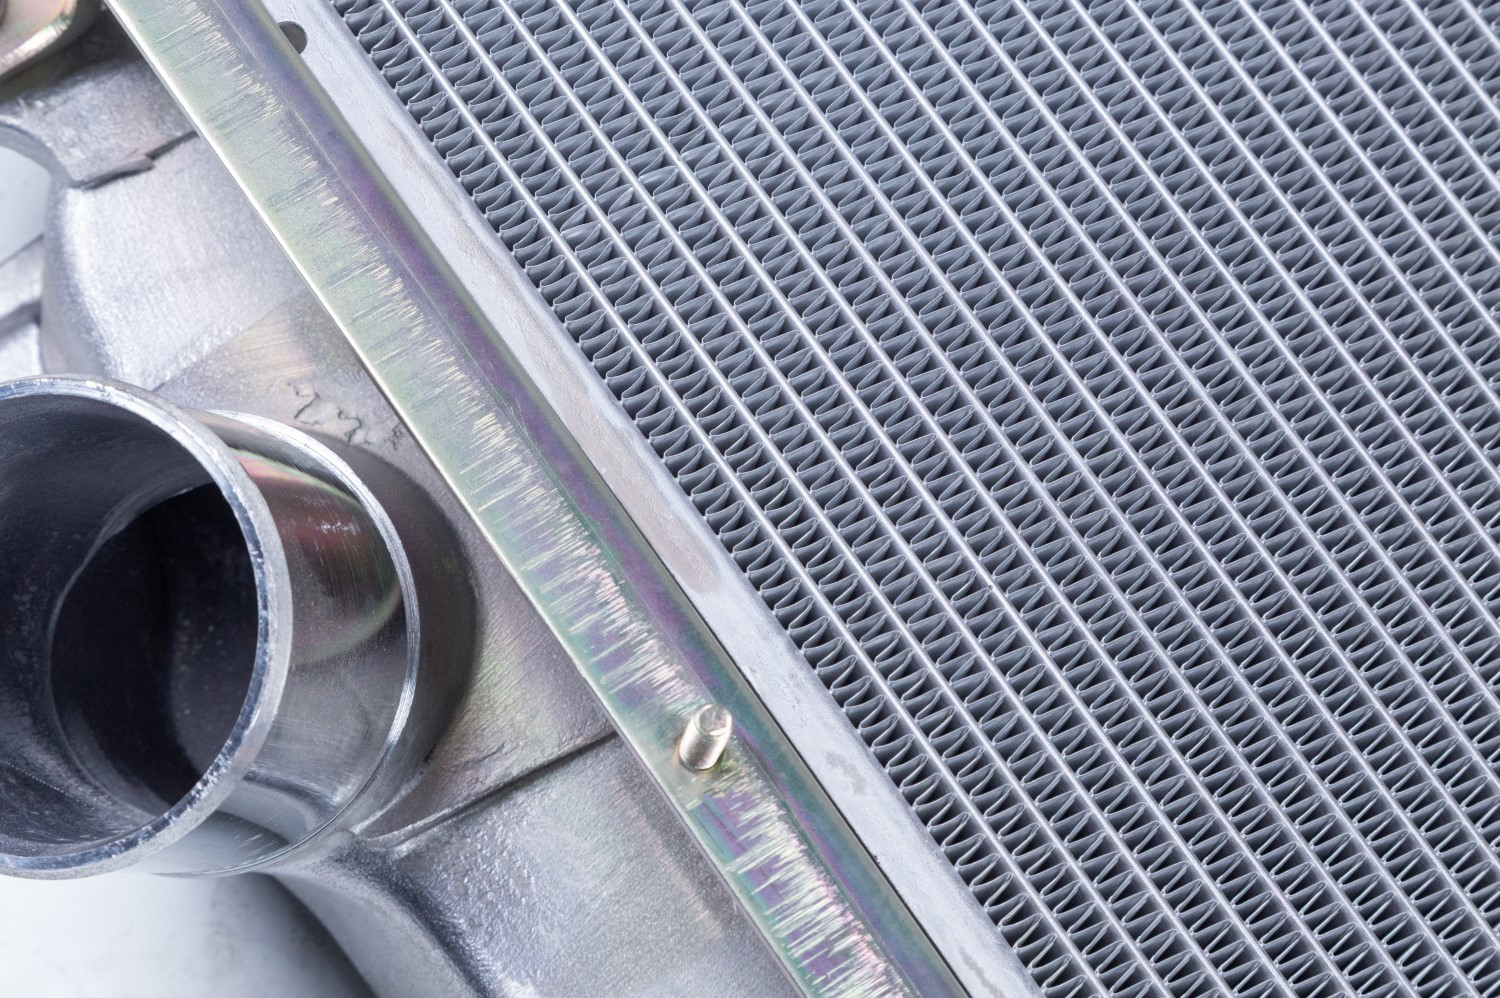 stock-photo-texture-of-a-radiator-cooling-unit-1841110756-min